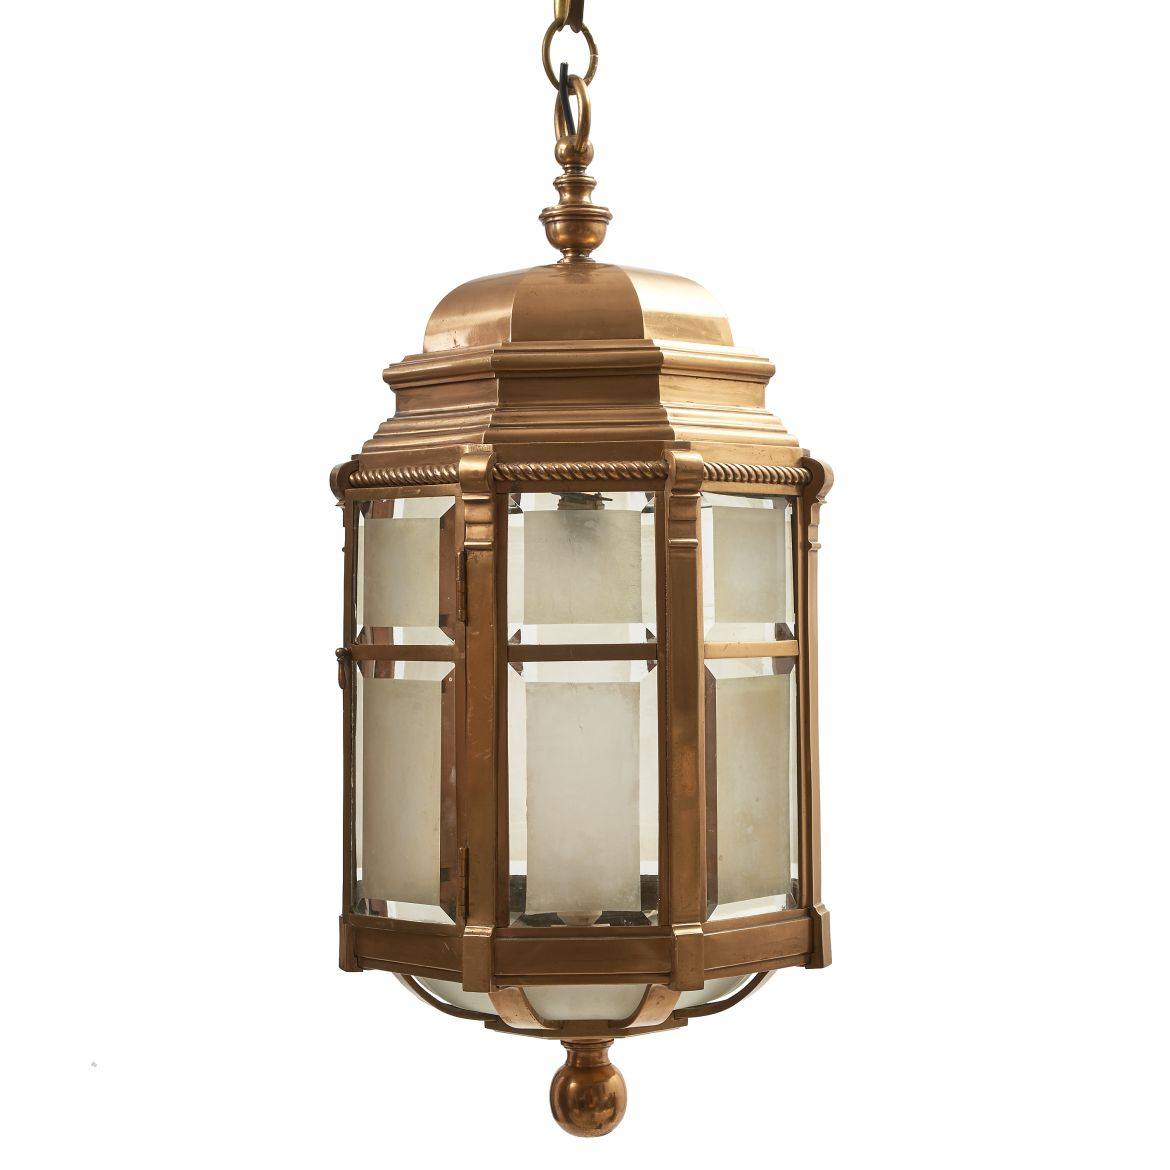 Edwardian Hexagonal Lantern